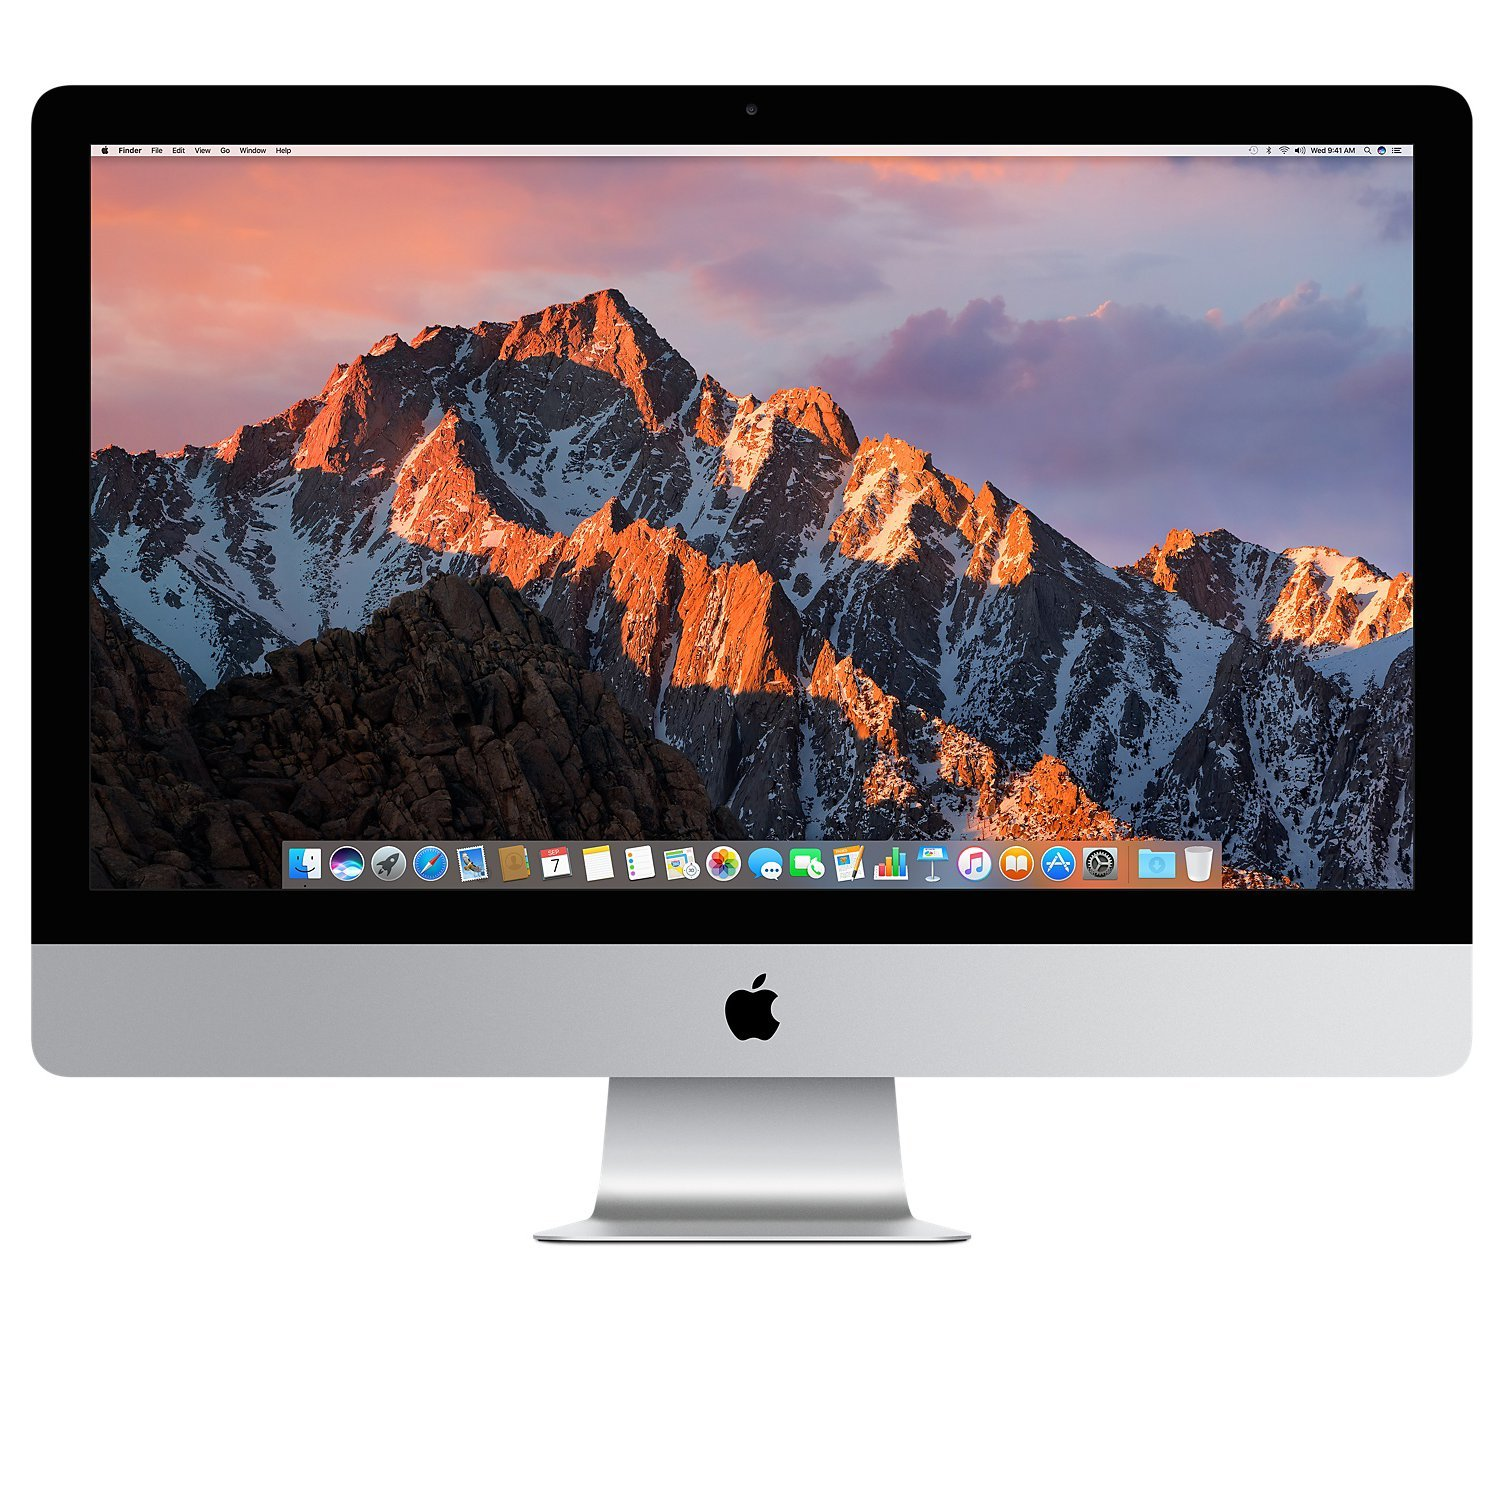 Apple iMac 27'' Desktop with Retina 5K Display (Mid 2017) - 4.2GHz Quad-Core Intel Core 7th-gen i7, 1TB SSD, 64GB 2400MHz DDR4 Memory, 8GB Radeon Pro 580 Graphics, macOS, Magic Keyboard - Spanish by Apple (Image #1)